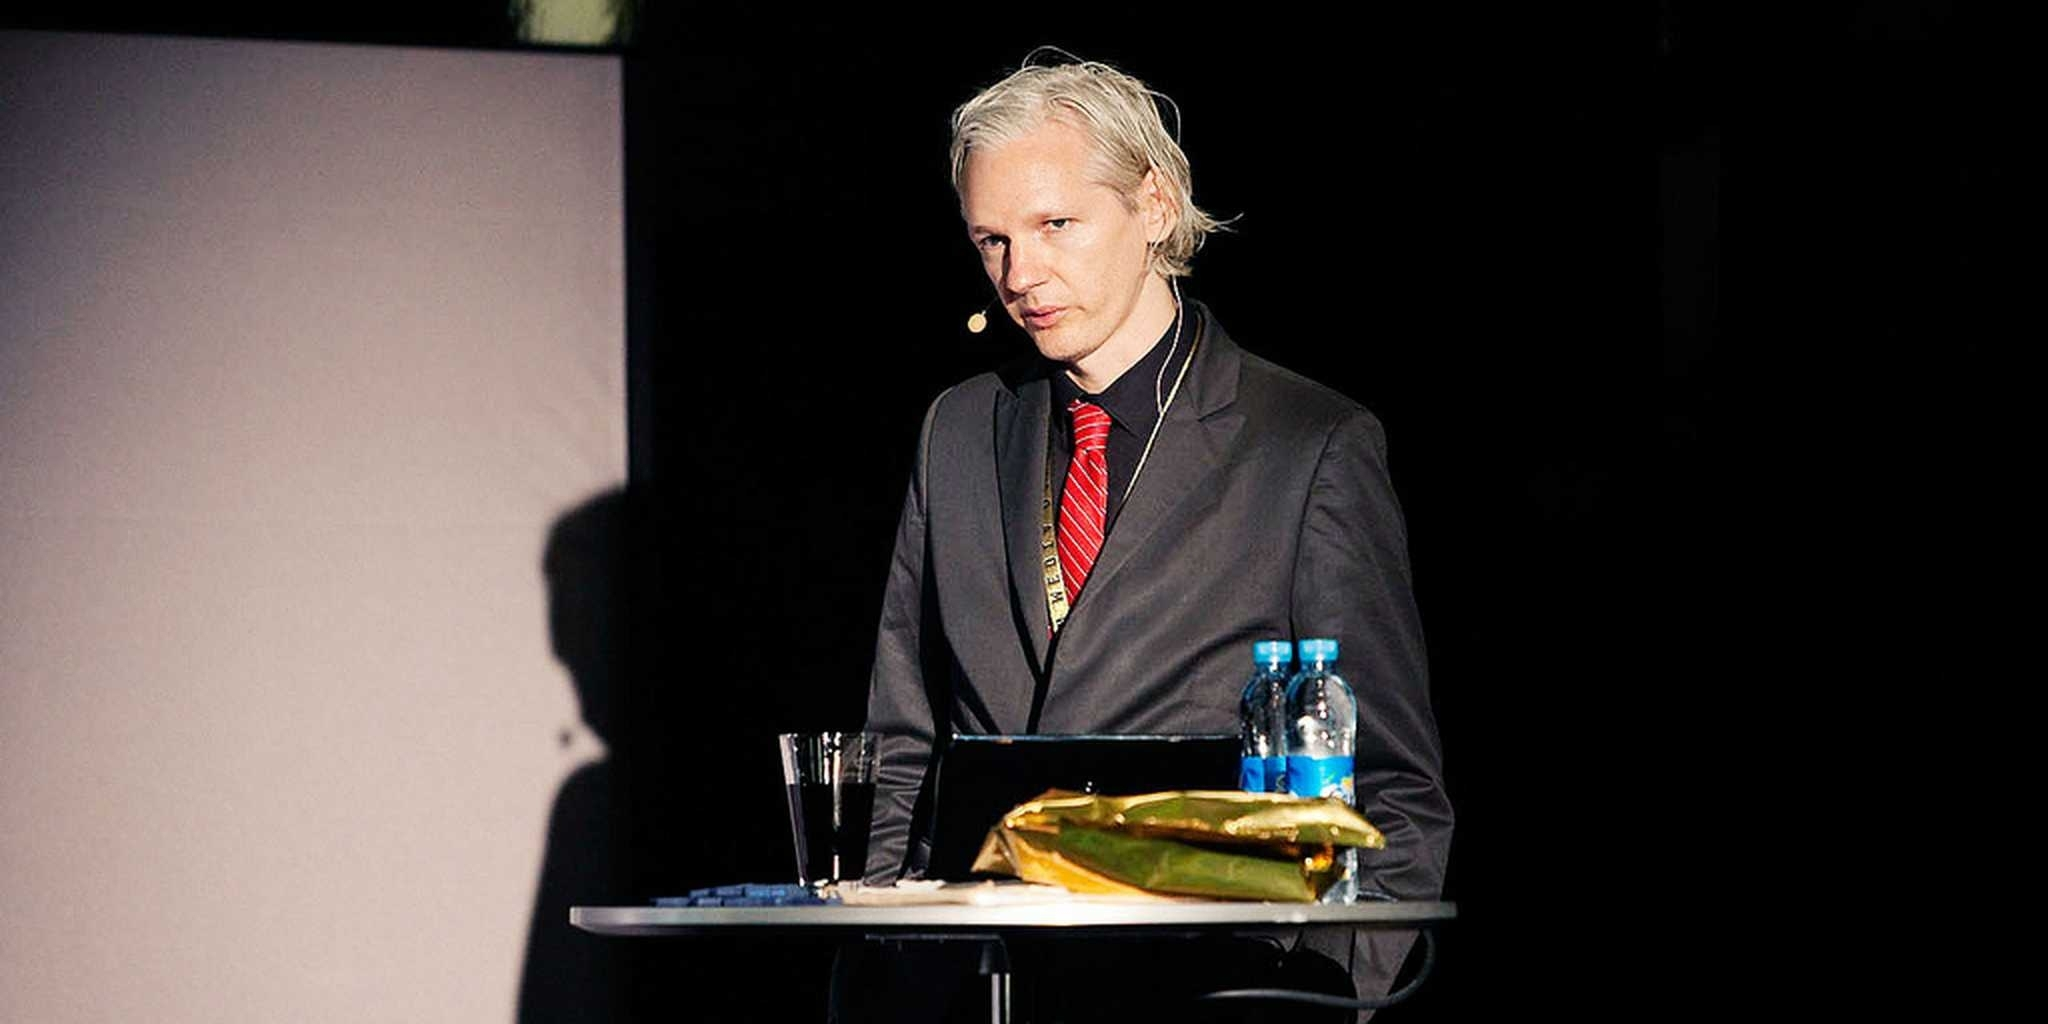 Watch Julian Assange Open For M.i.a. | The Daily Dot